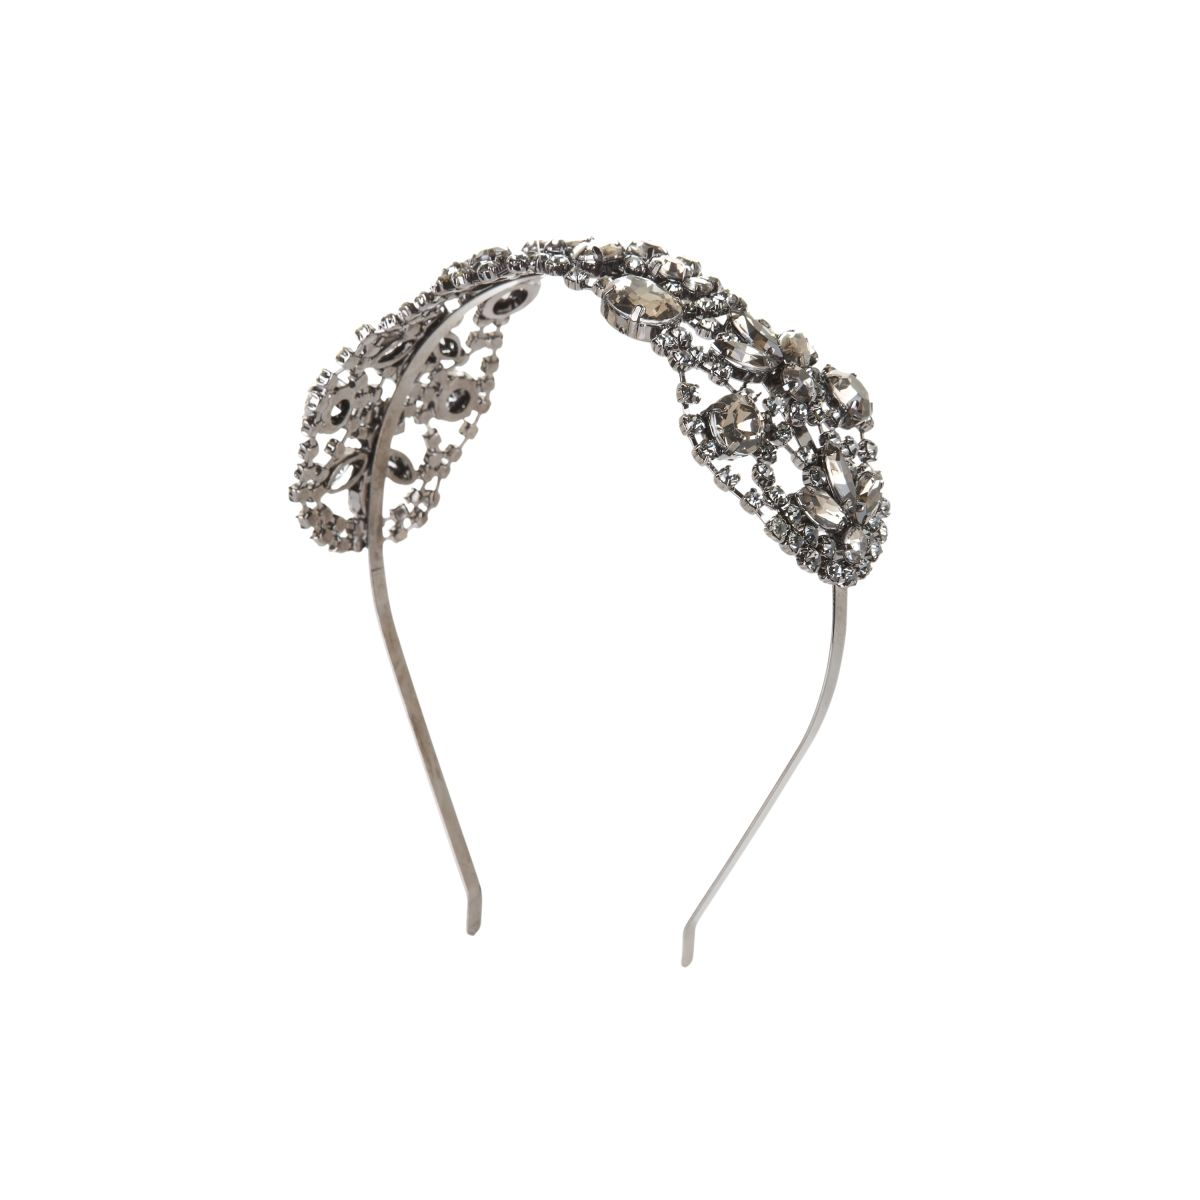 BCBG has some really pretty rhinestone headbands - it was hard to choose my favorite!